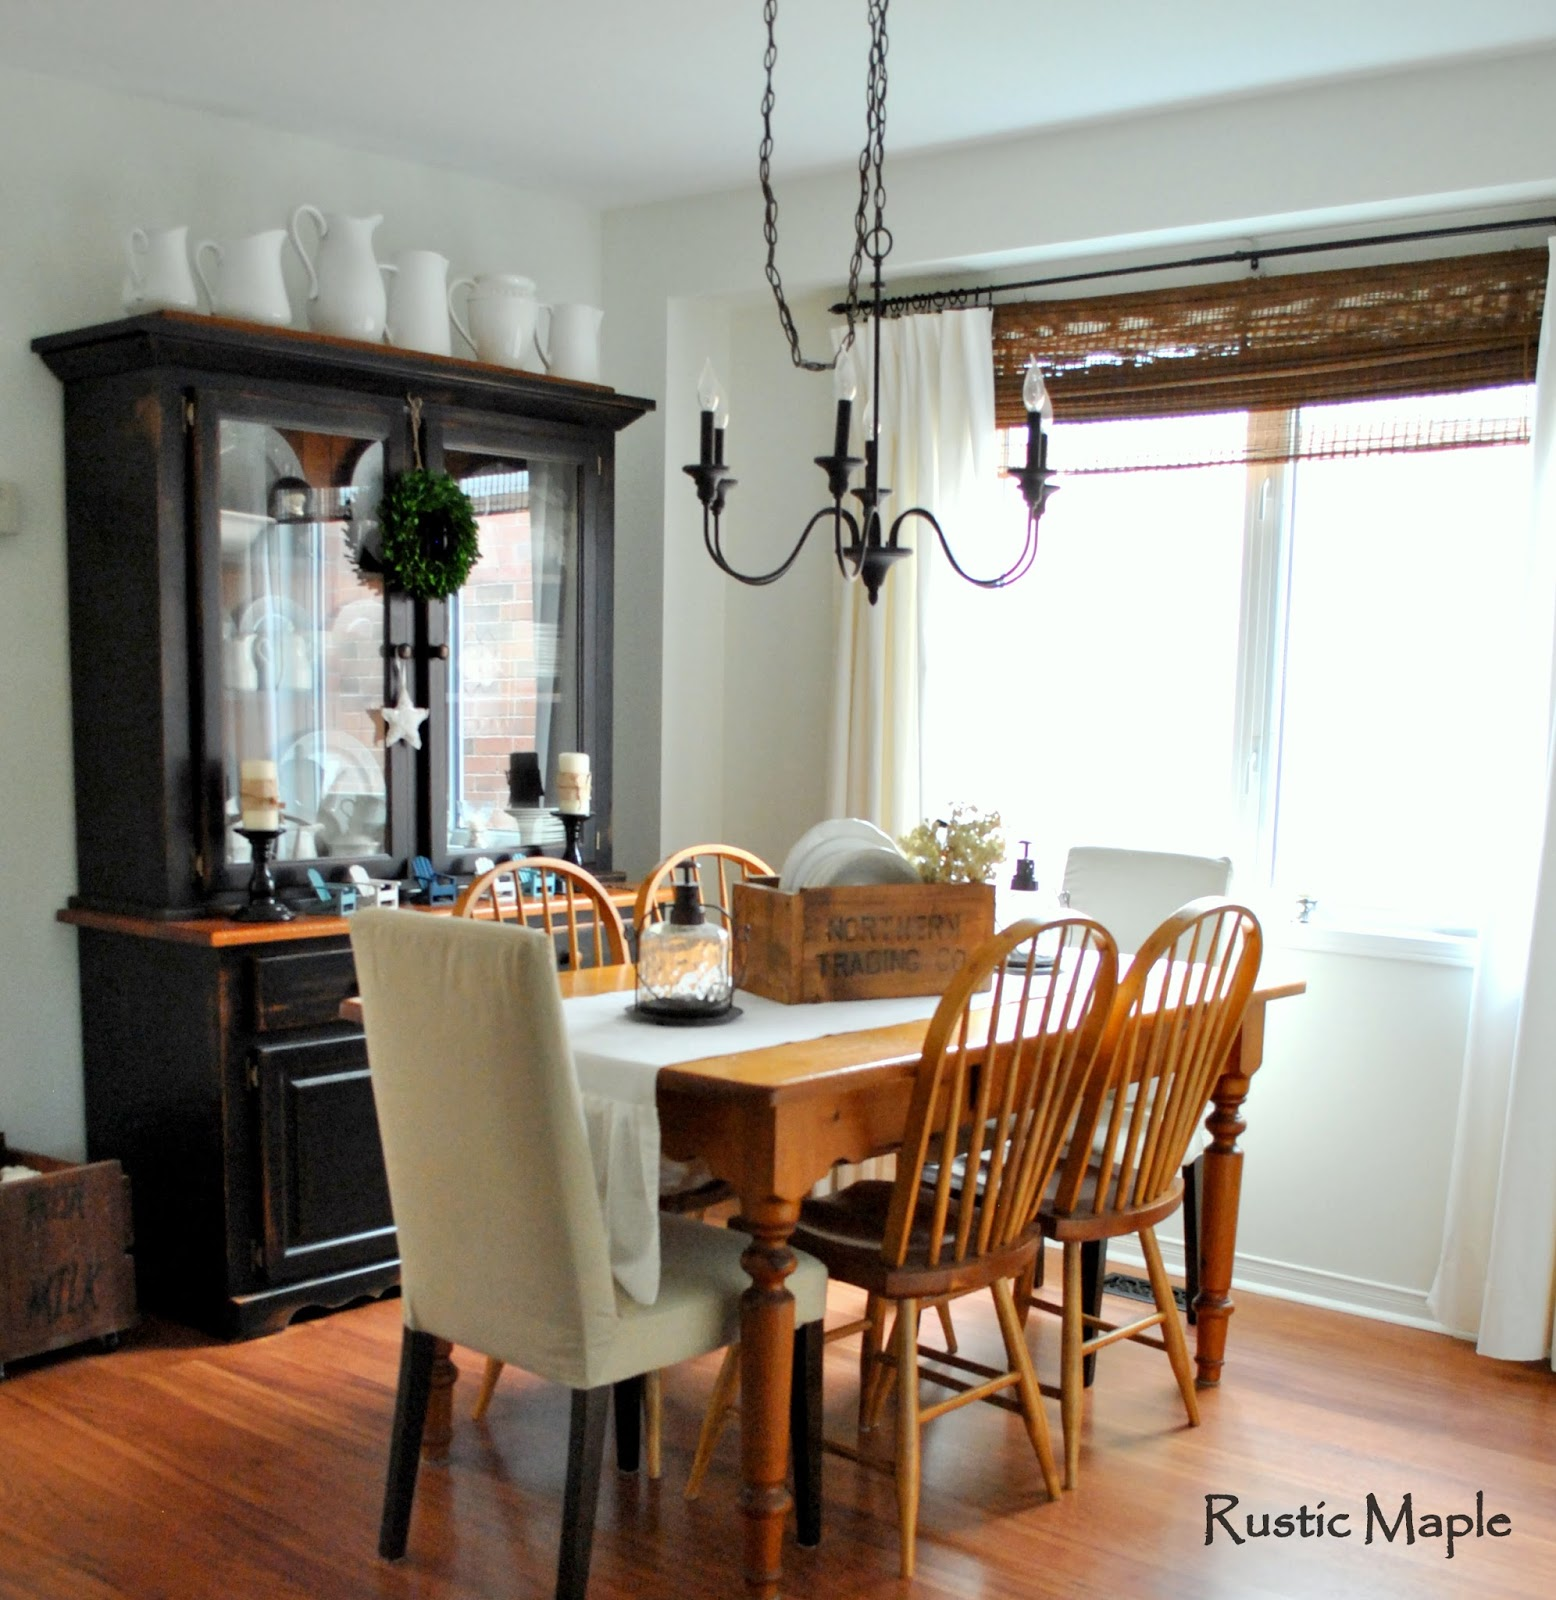 diy painted windsor chairs dining sale rustic maple: our farmhouse-lakehouse room and plans